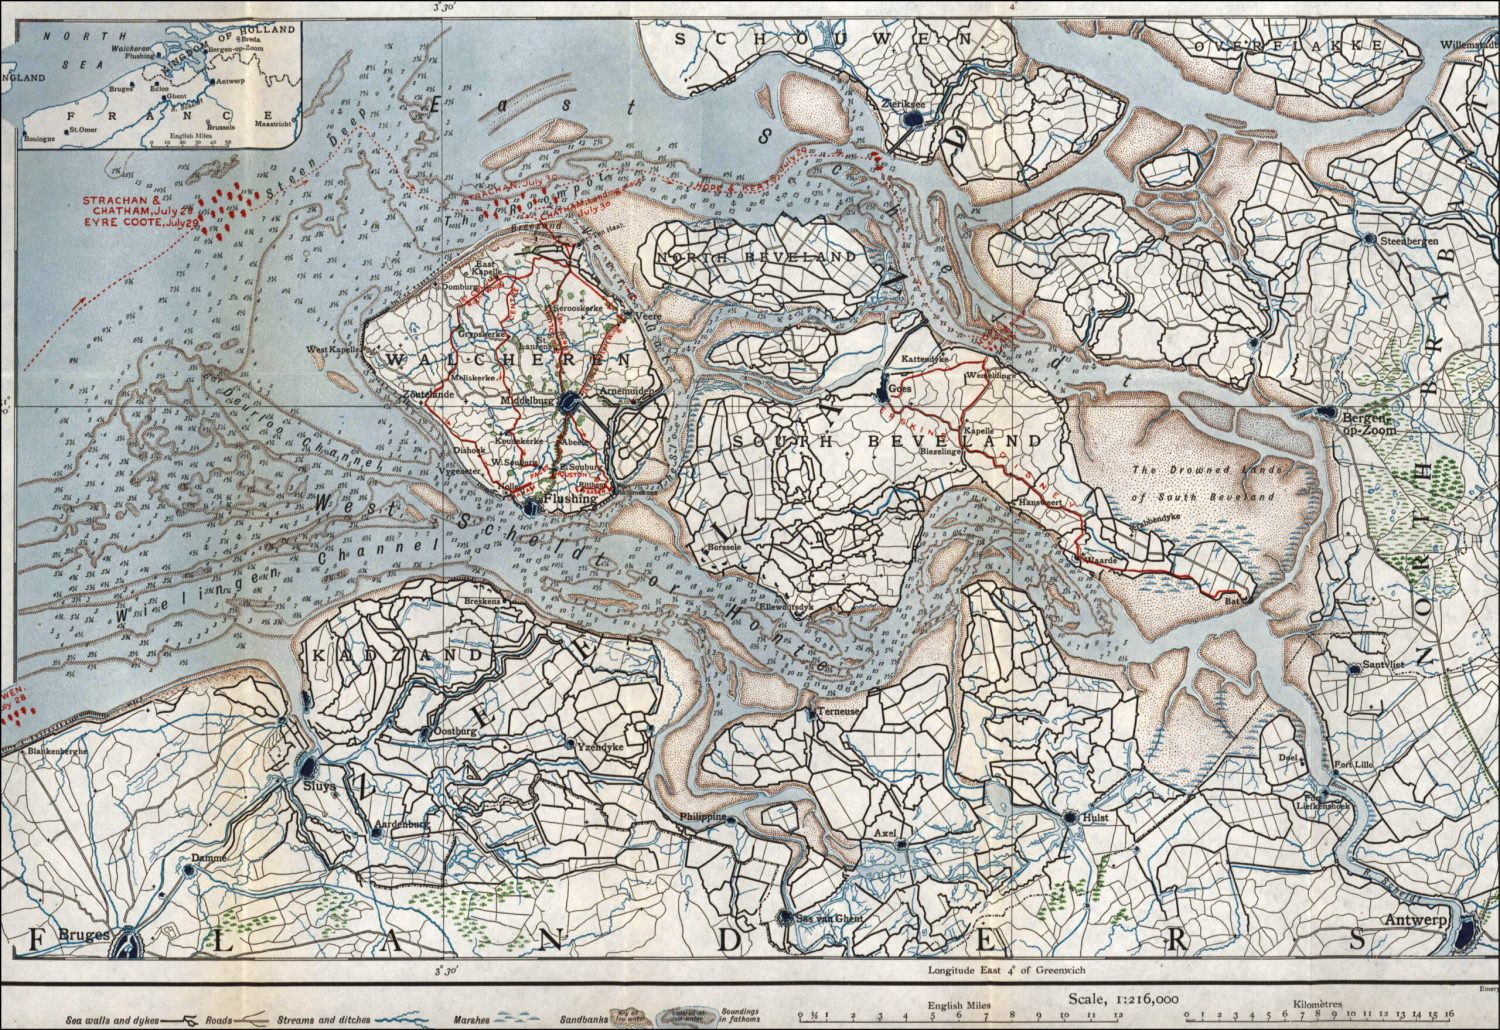 BELOW The Walcheren Campaign was fought amid the maze of low-lying land and intersecting rivers and channels on the Dutch coast. This general plan gives a vivid impression of the landscape in 1809, and shows the major sites mentioned in the text.